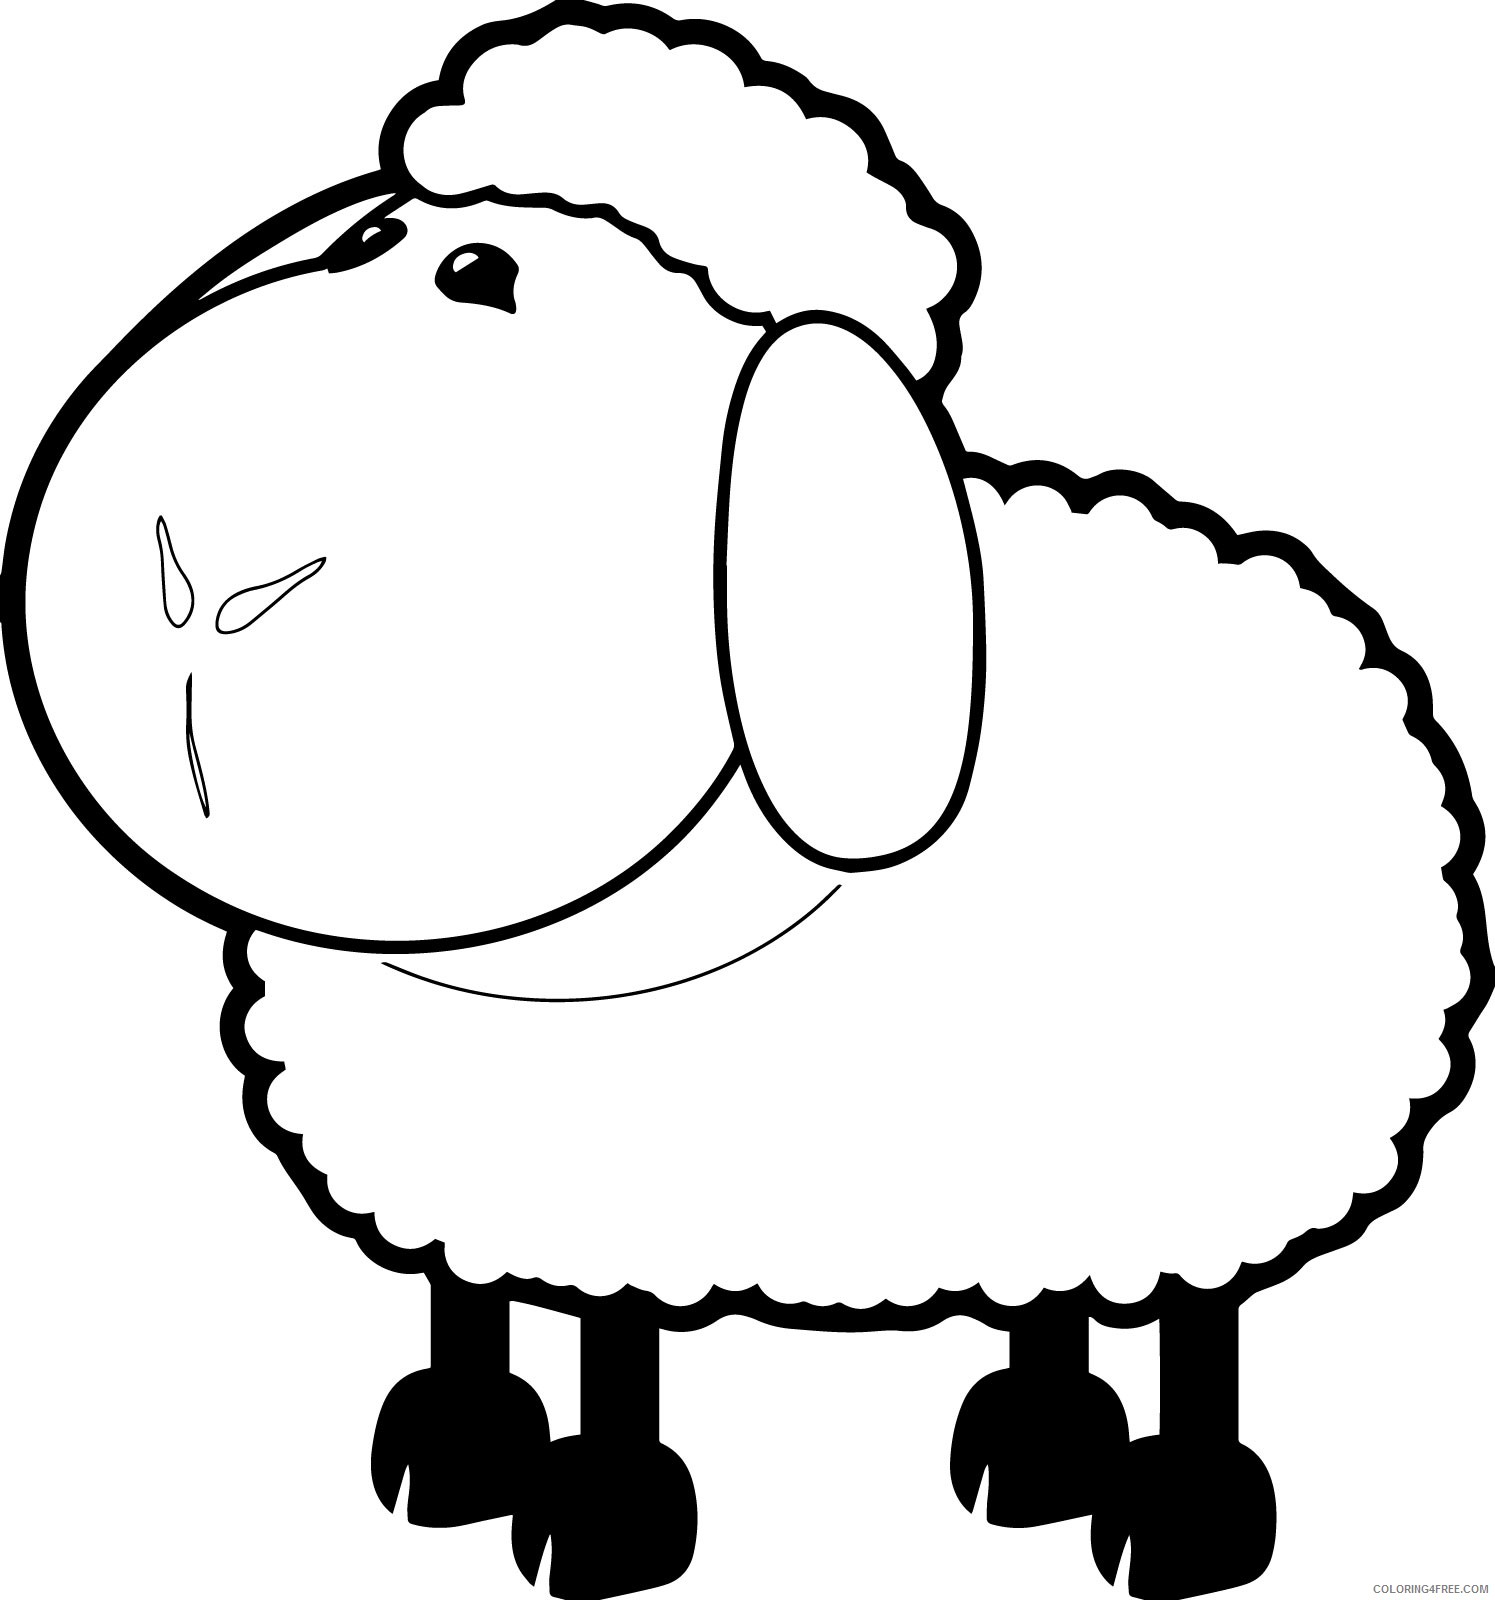 sheep coloring pages free to print Coloring4free